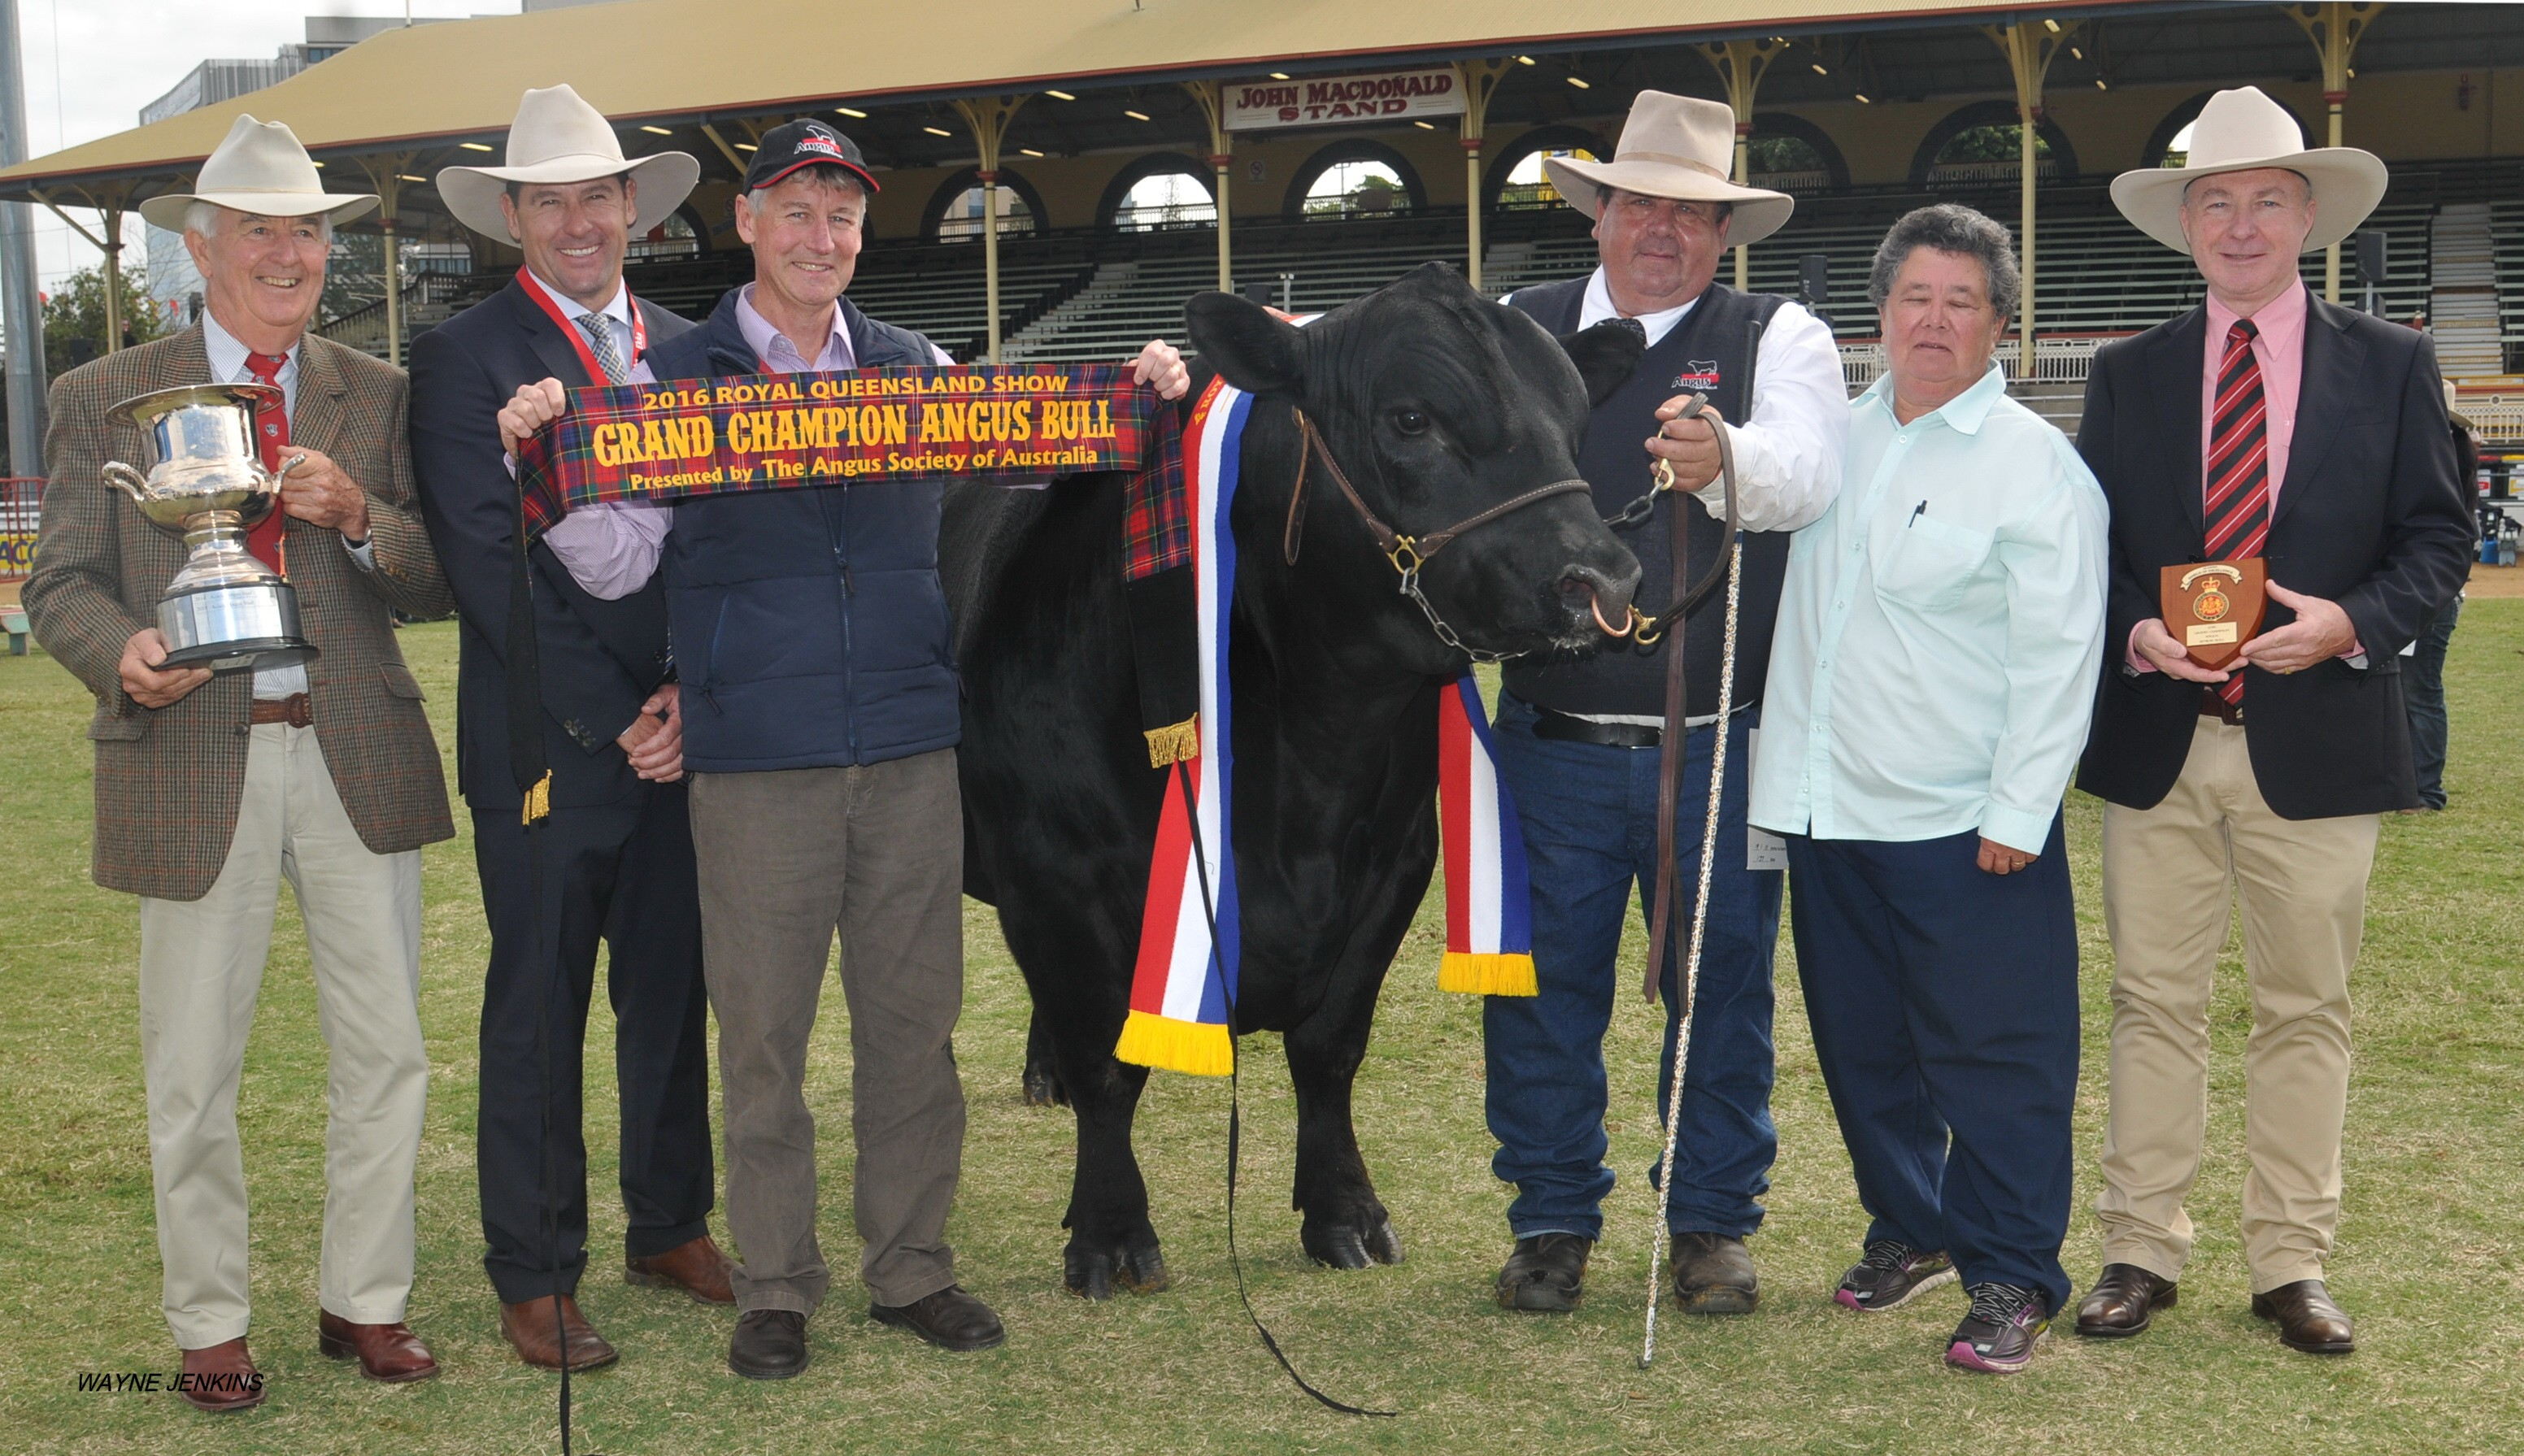 EKKA 2016 Grand Champion Angus Bull